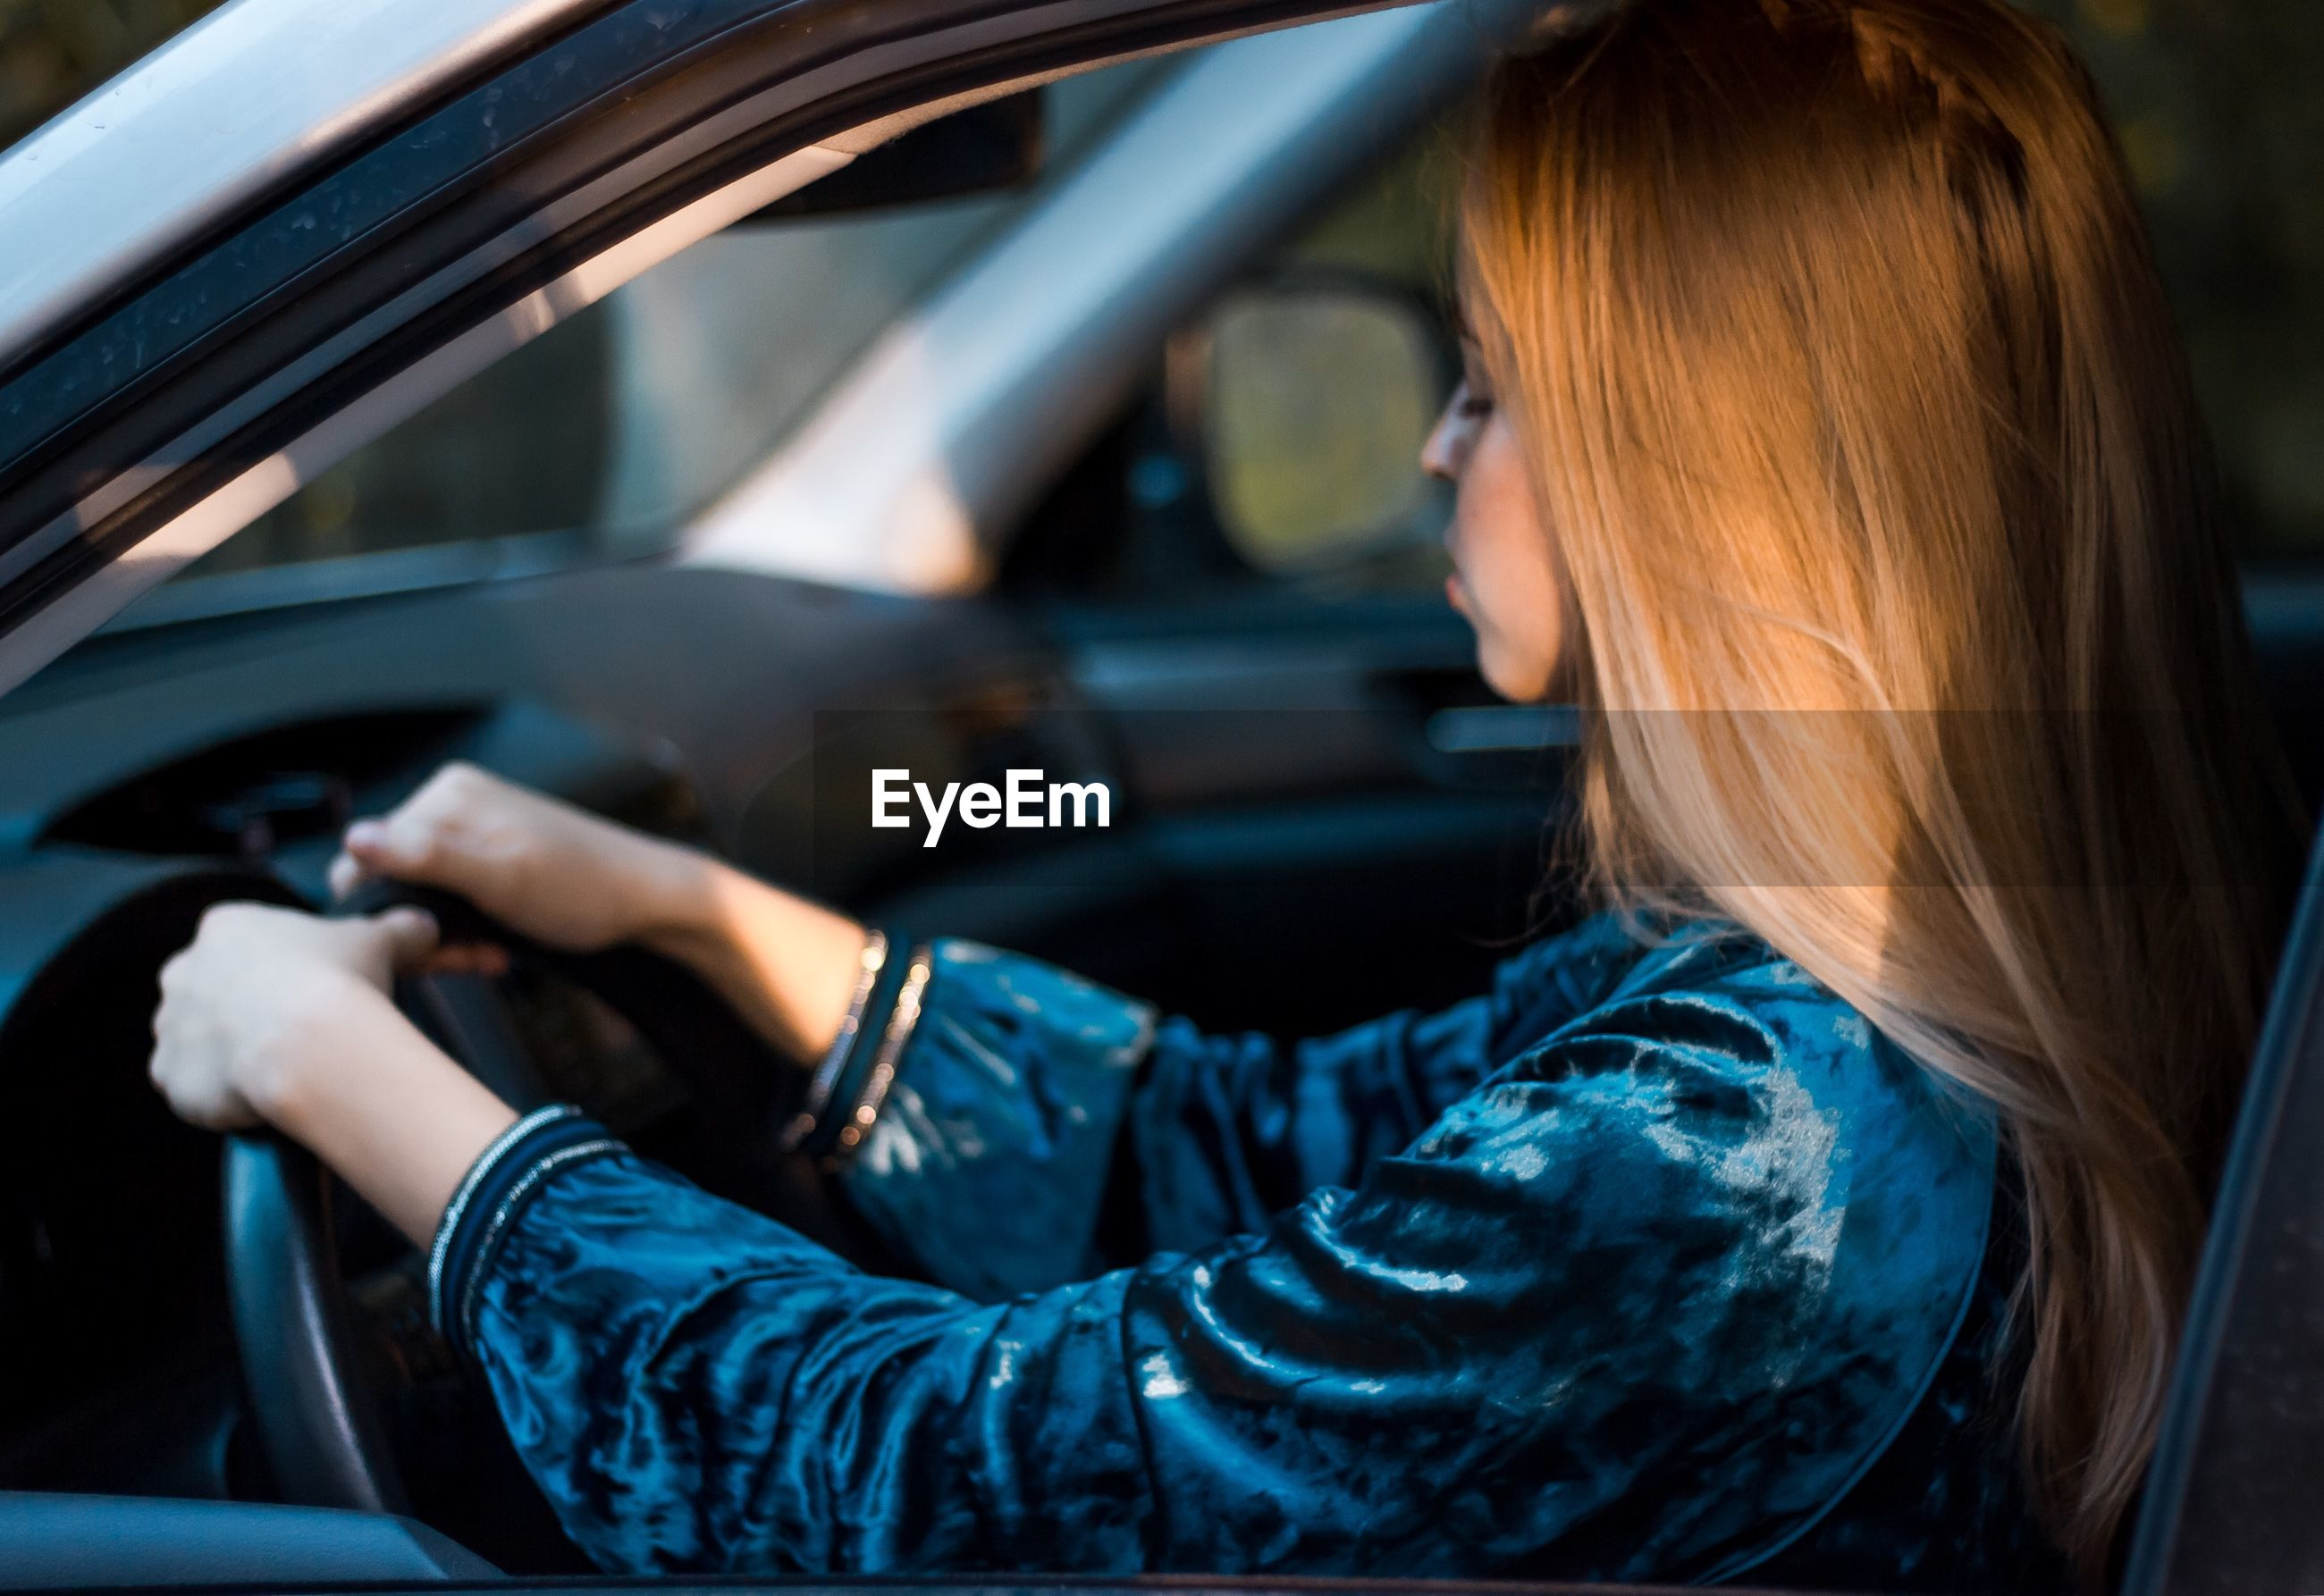 Side view of young woman with blond hair driving car seen through window